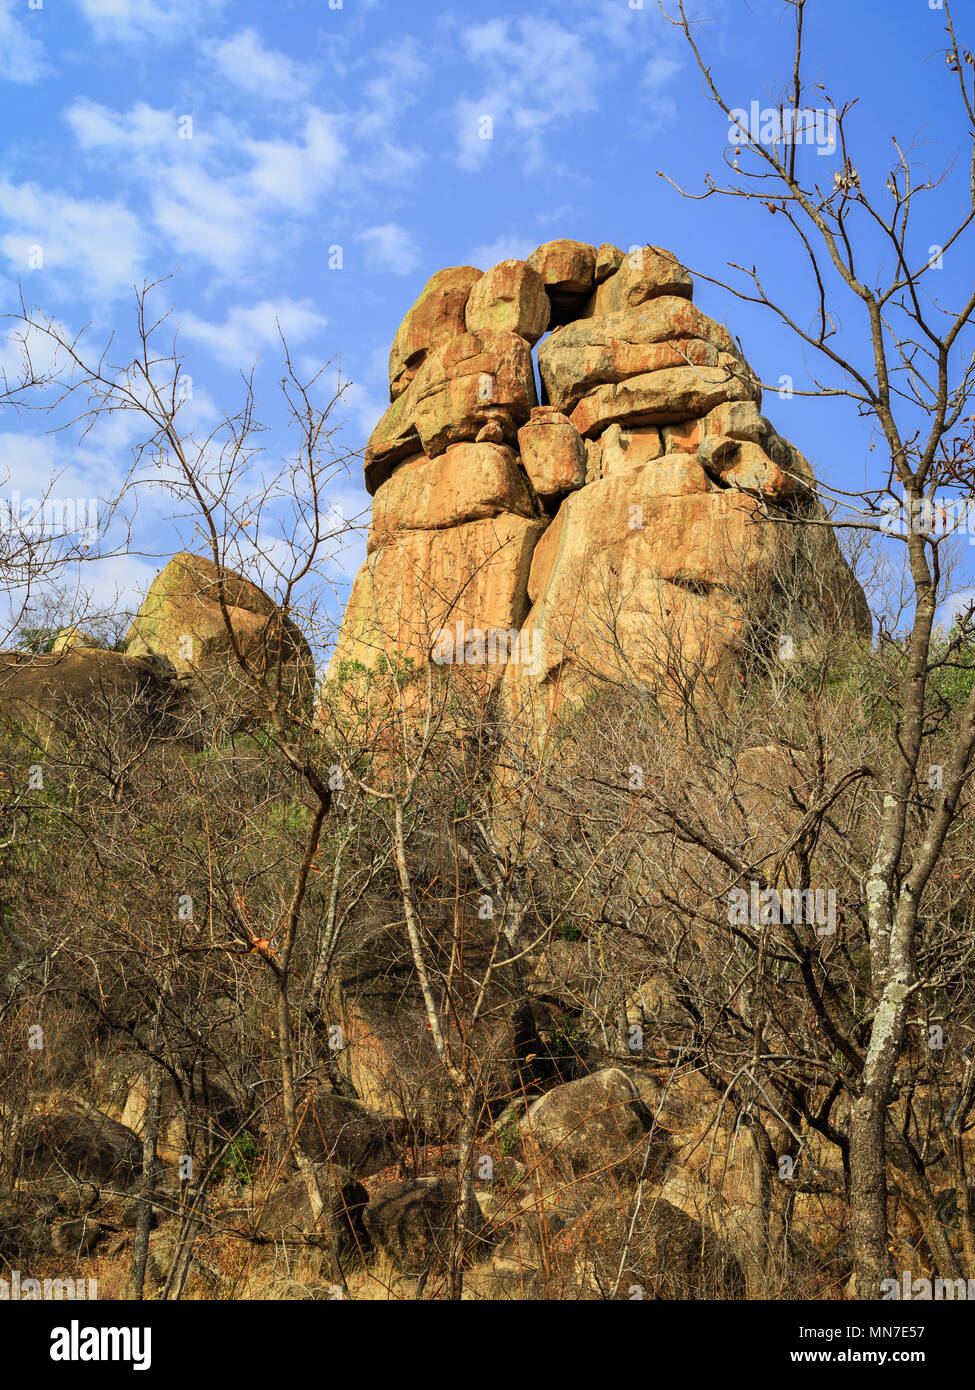 Balancing rocks in Matobo National Park, Zimbabwe, formed by millions of years of weathering. September 26, 2016. - Stock Image